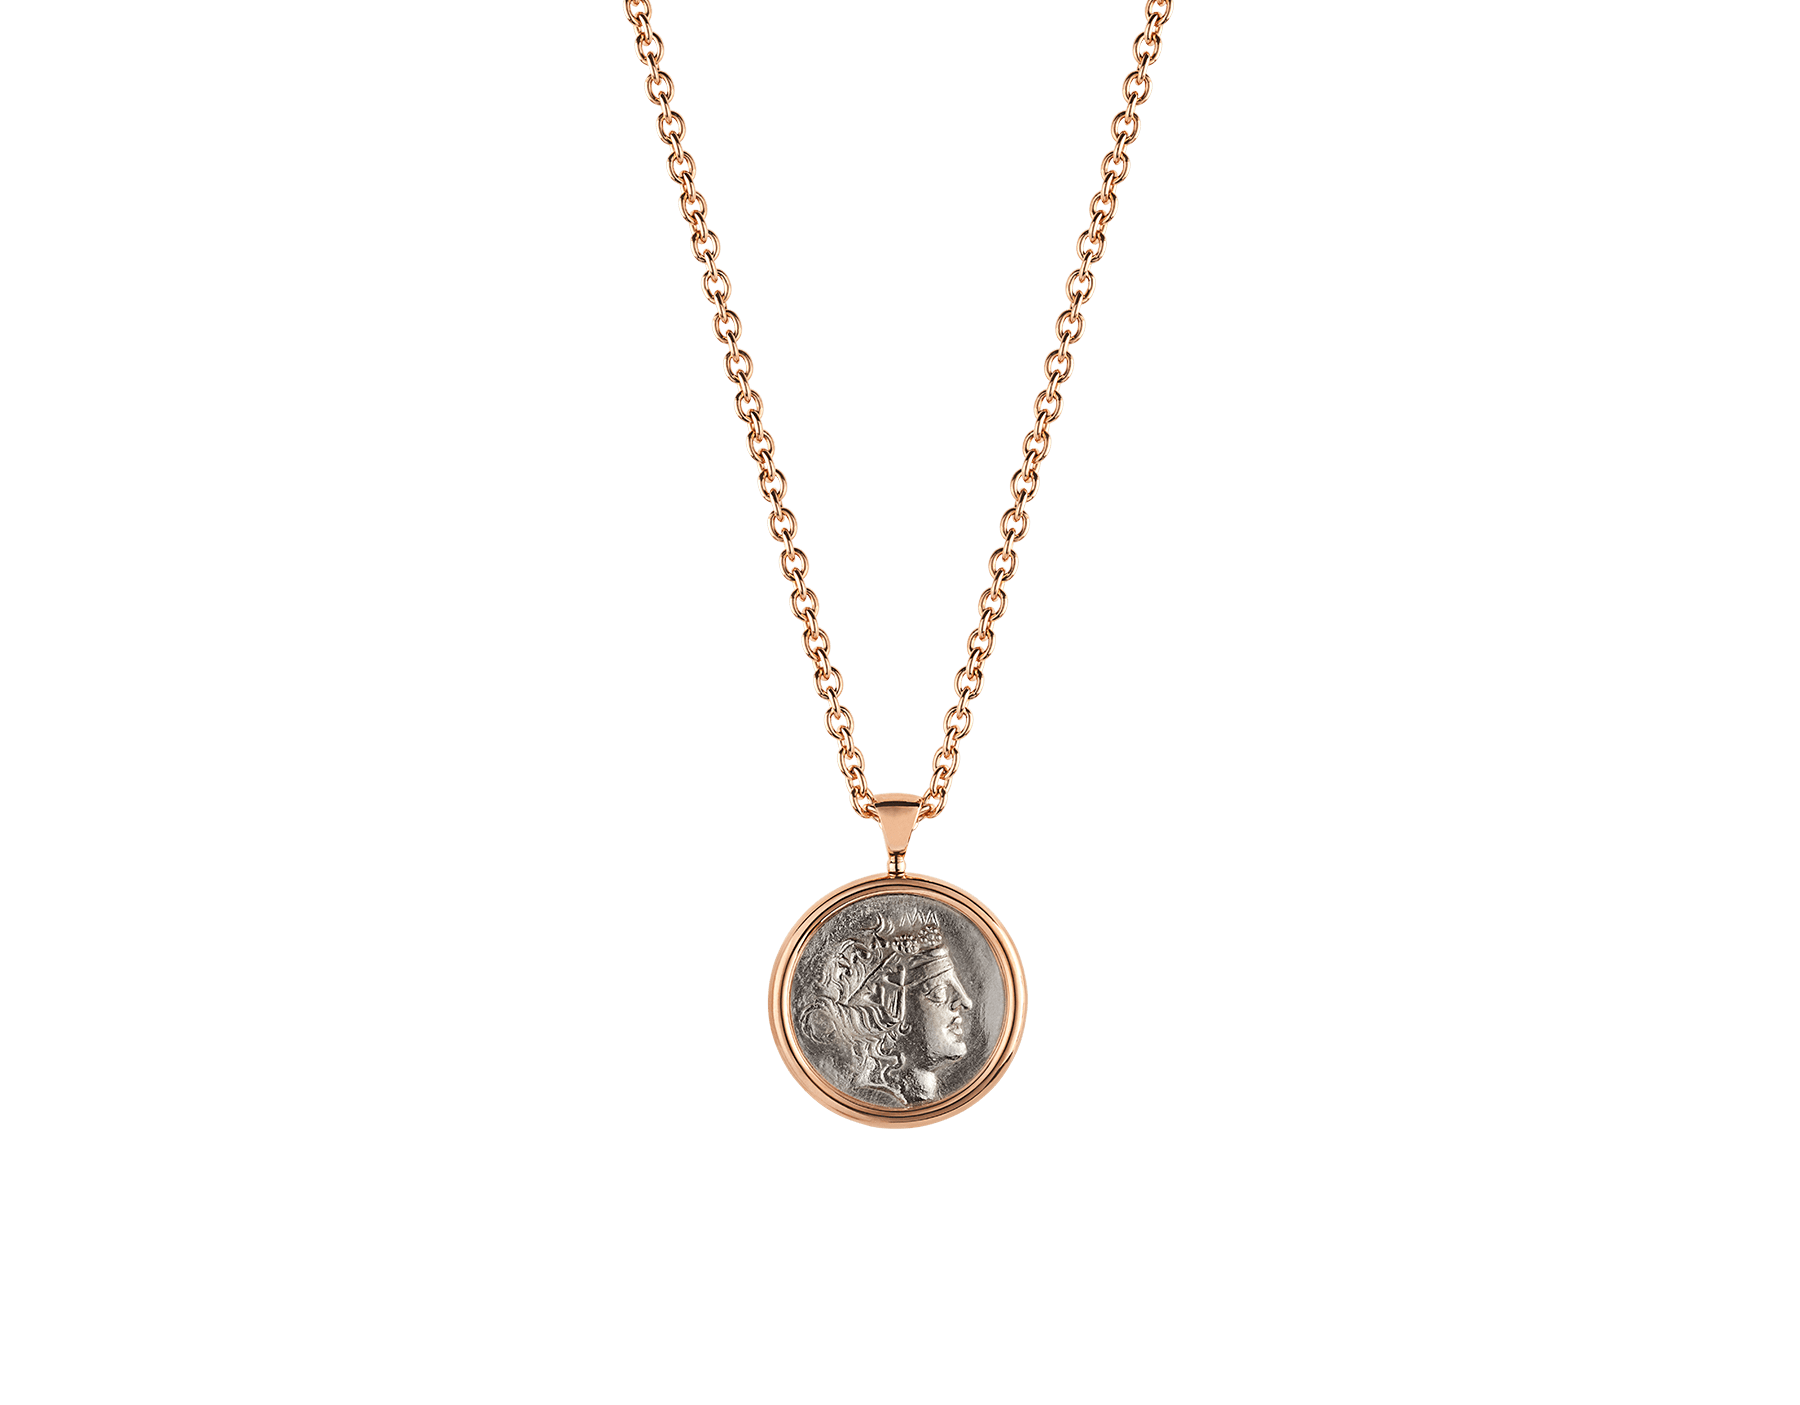 Monete necklace with 18 kt rose gold chain and 18 kt rose gold pendant set with an antique coin 347707 image 1